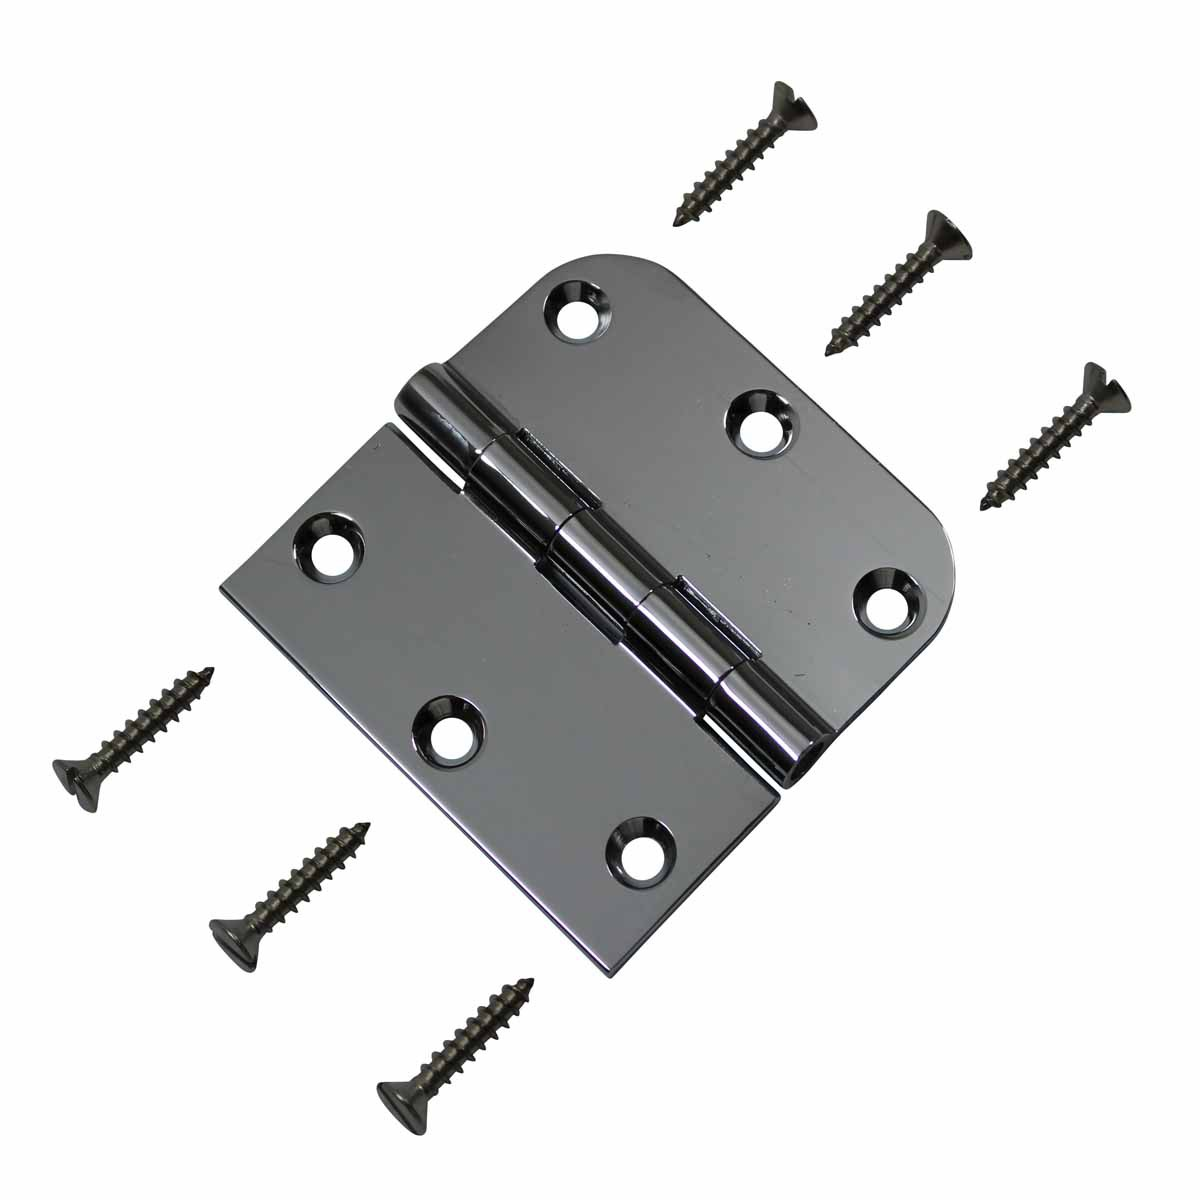 Cabinet Hinges Chrome On Brass Combo Hinge 3 x 3 Door Hinges Door Hinge Solid Brass Hinge